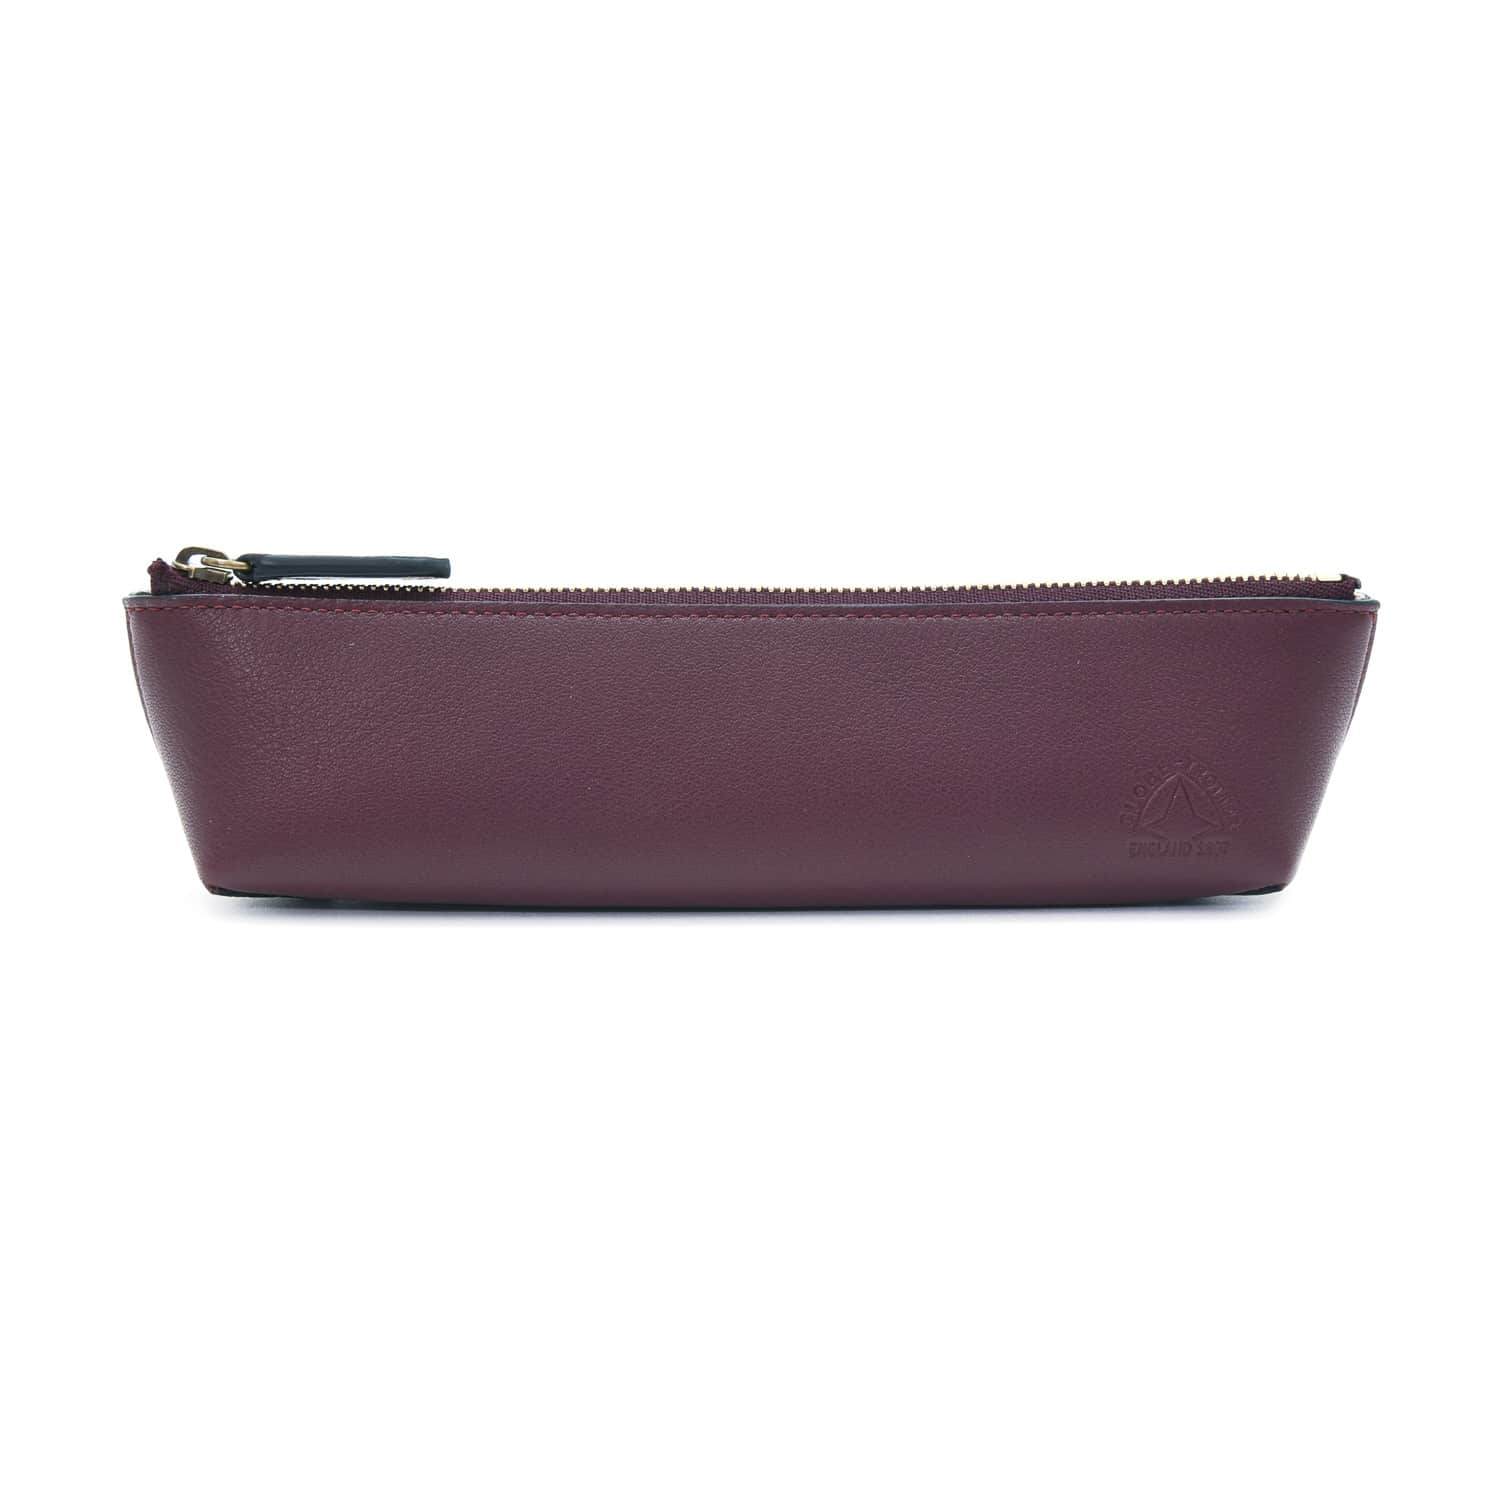 Centenary Leather · Pencil Case - Oxblood